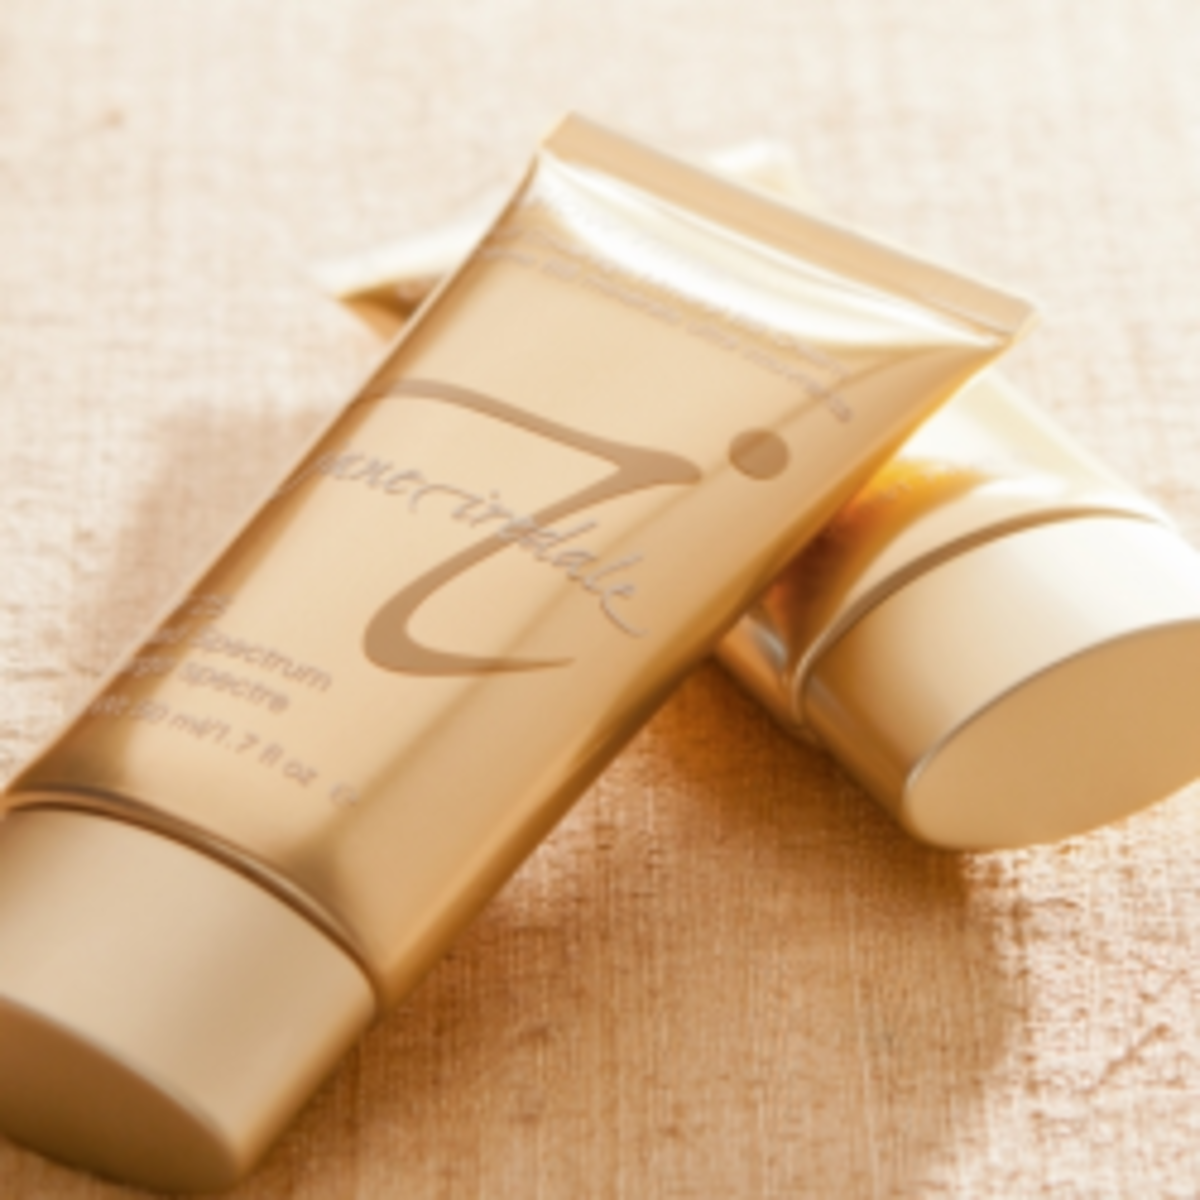 Jane Iradale BB Cream - Good for Sensitive or Acne-Prone Skin